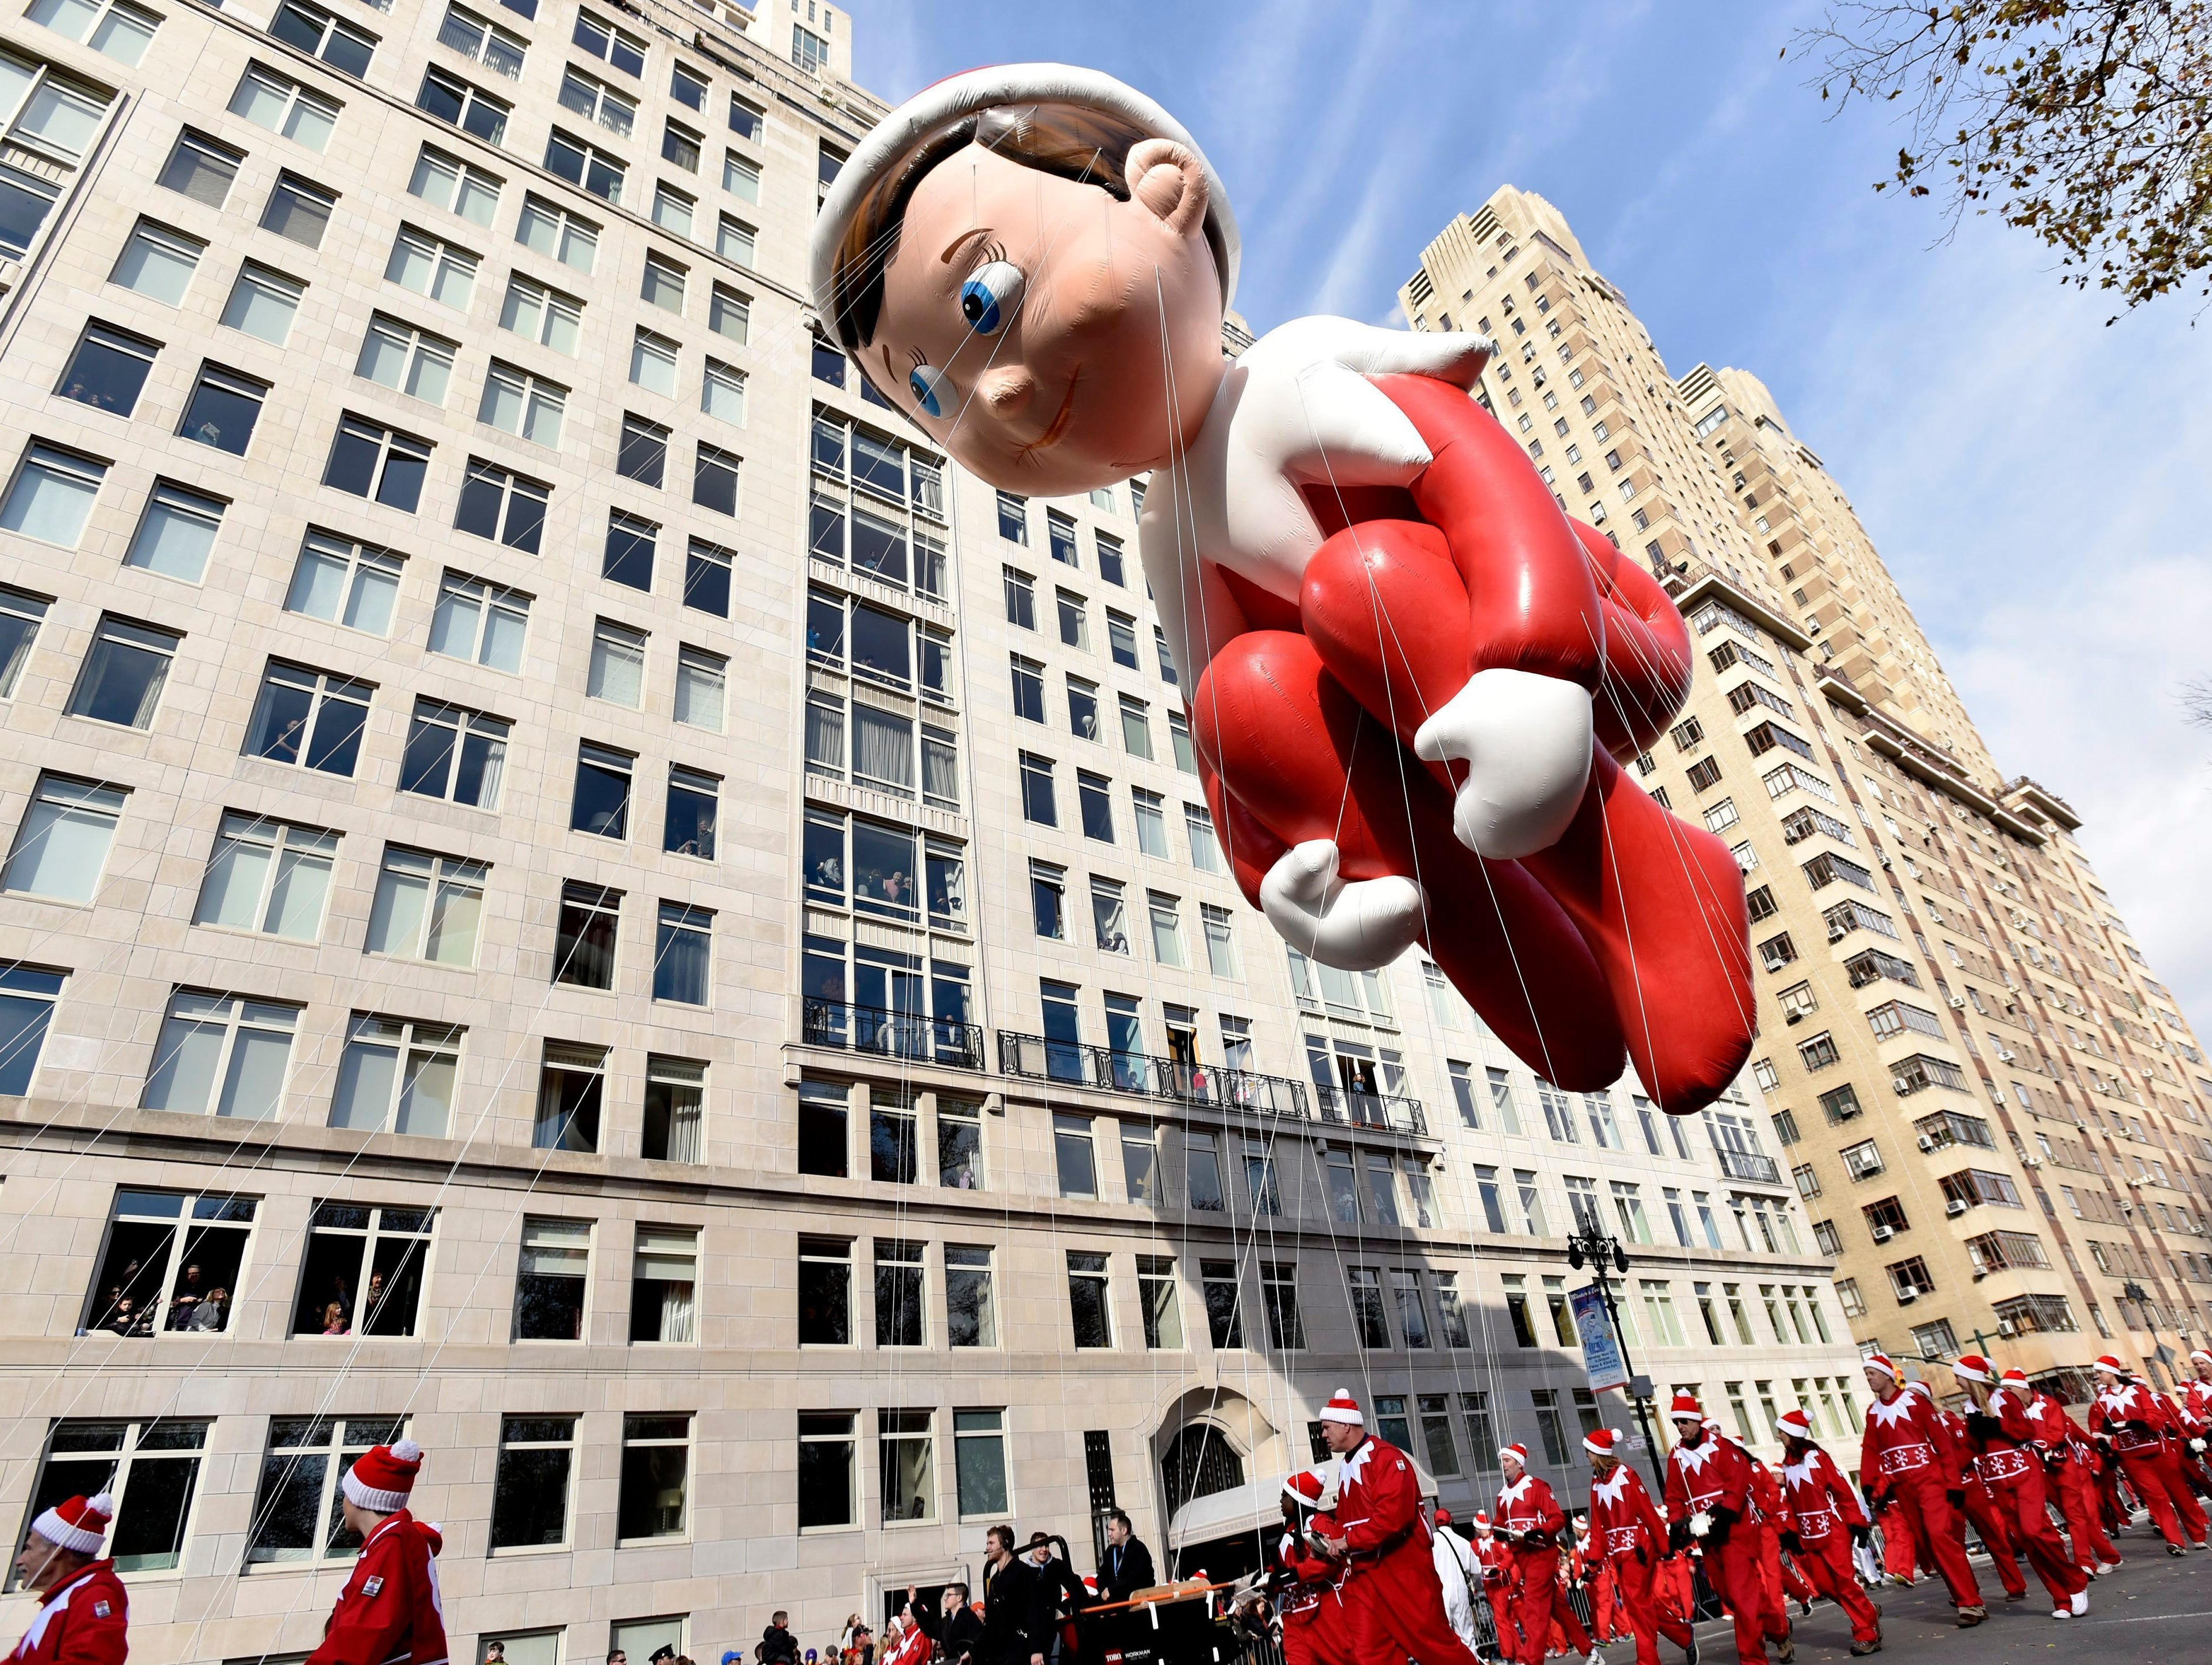 The Elf on the Shelf balloon during the 89th Macy?s Thanksgiving Day Parade in 2015.  PORTER BINKS/EPA The Elf on the Shelf balloon during the 89th Macy's 2015 Thanksgiving Day Parade.